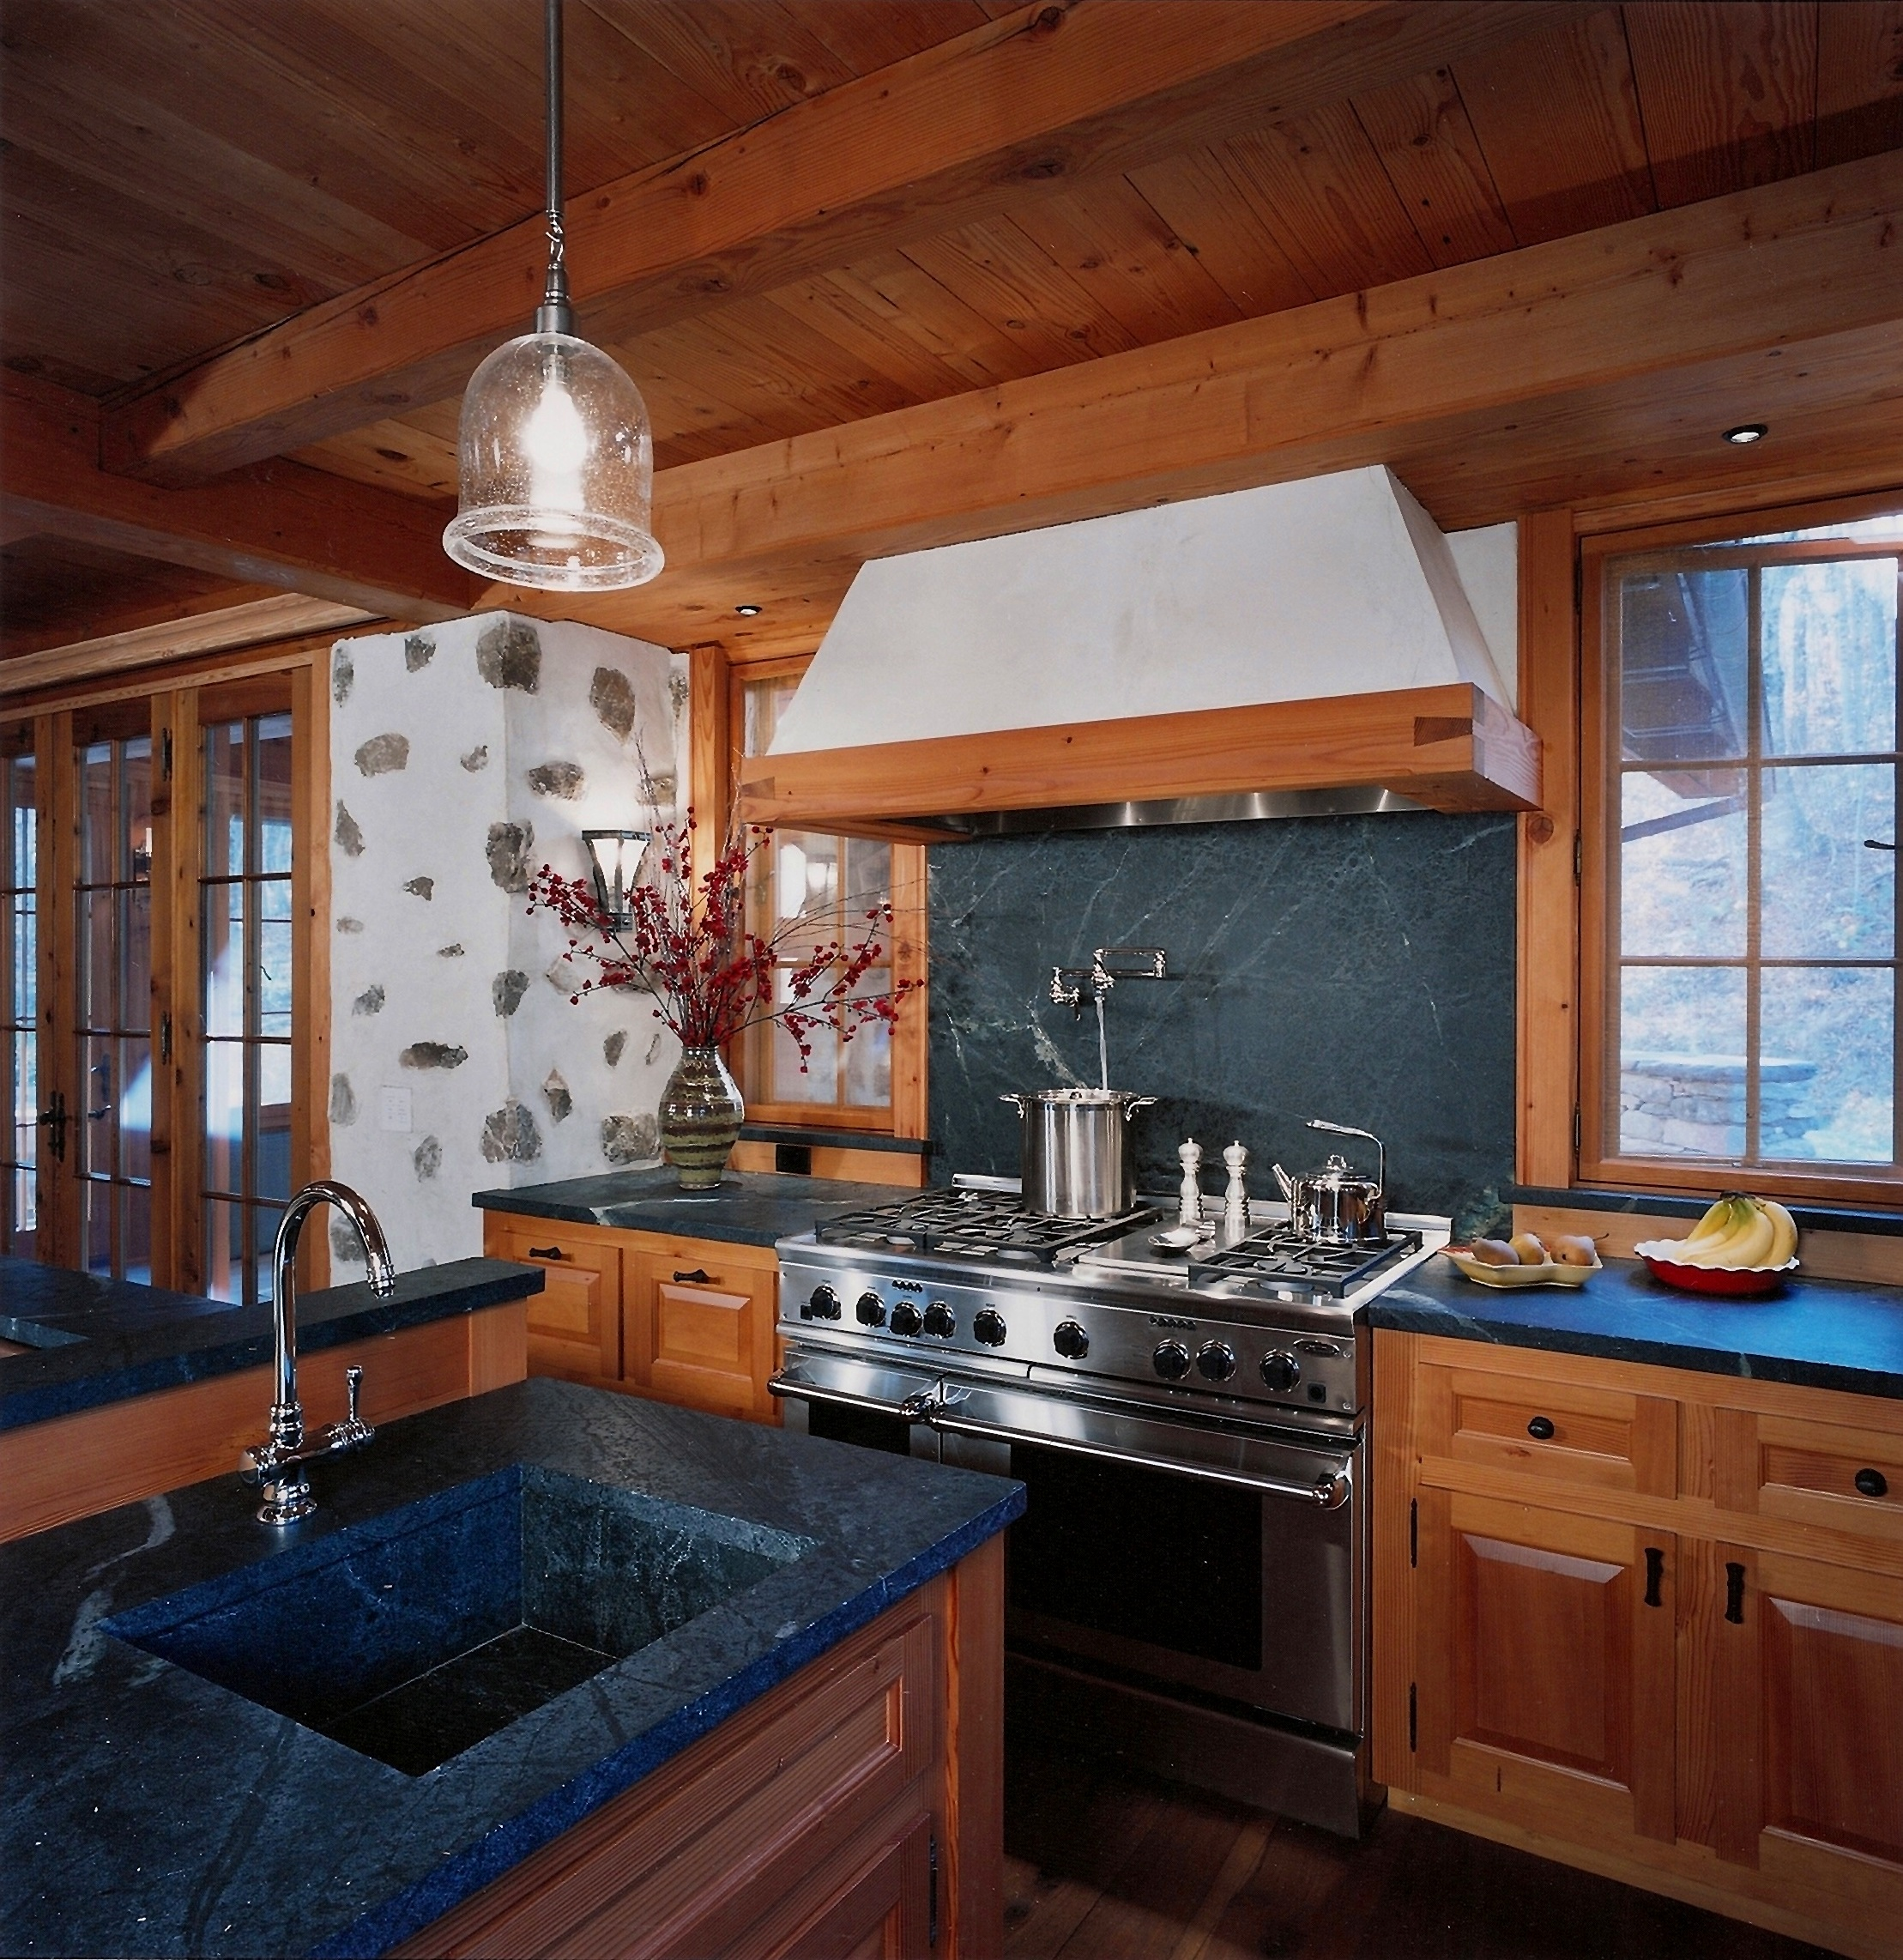 Mountain House Kitchen Stove.jpg